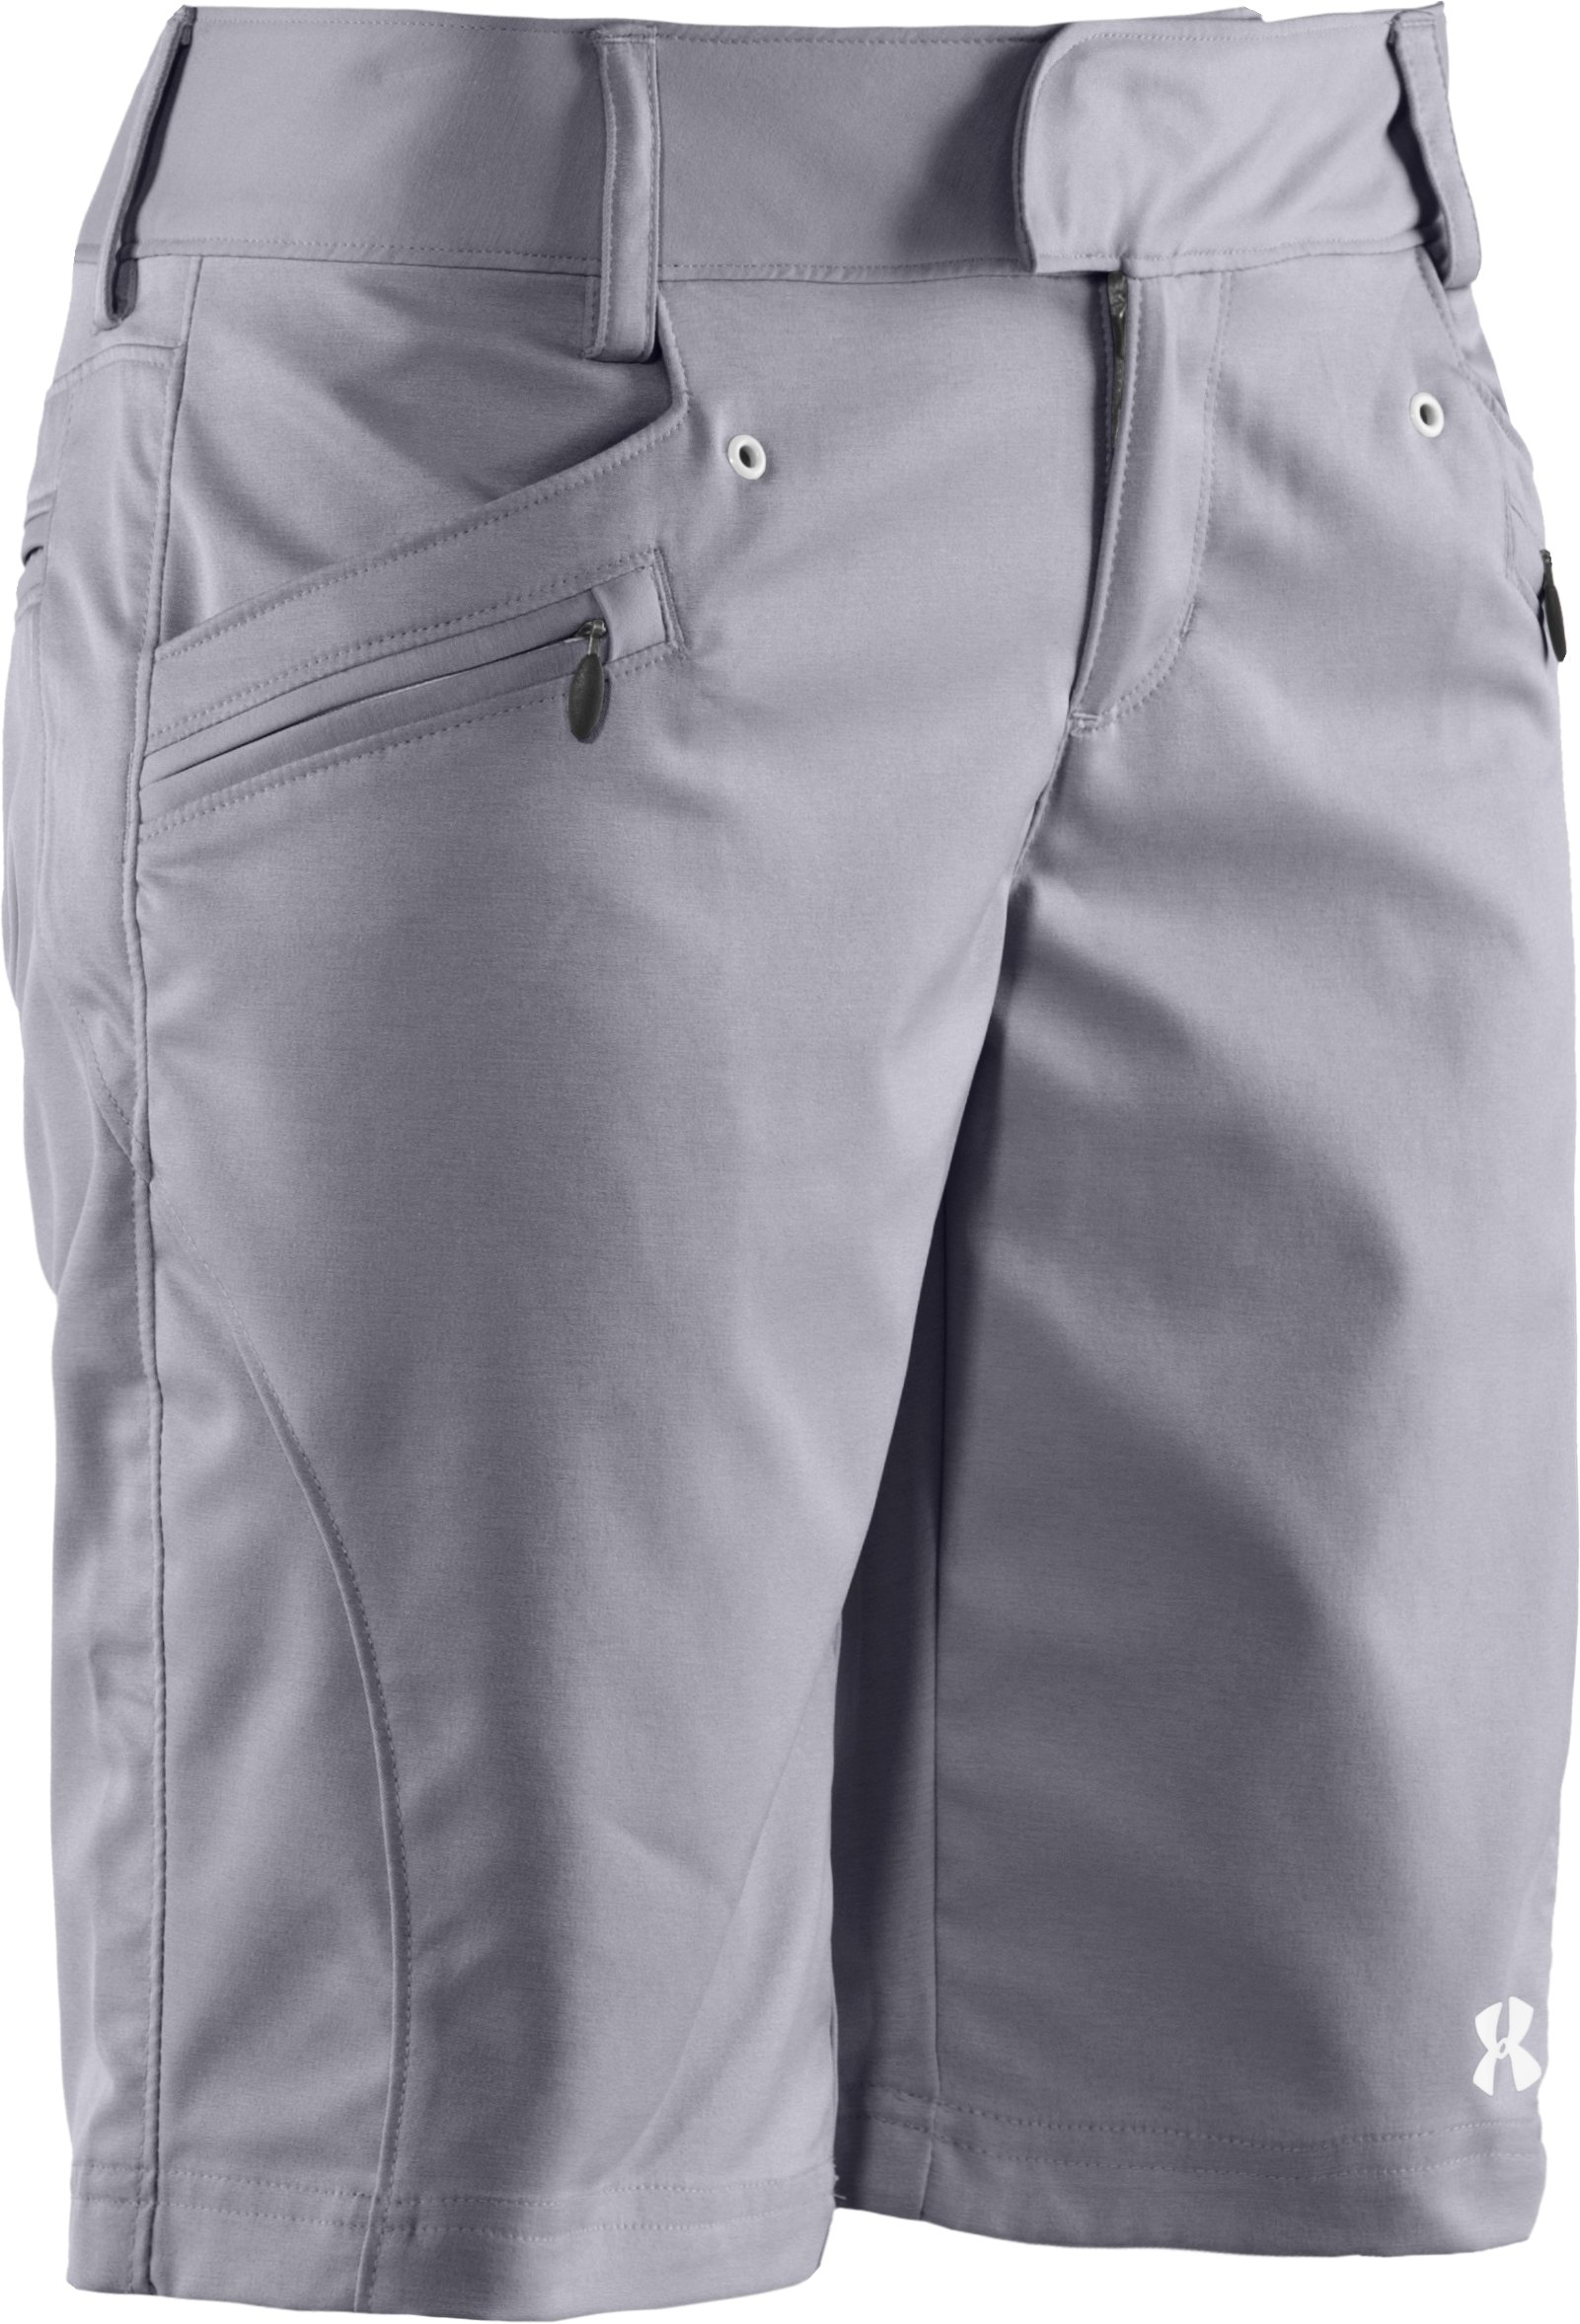 Women's UA Tellervo Walking Shorts, Aluminum,